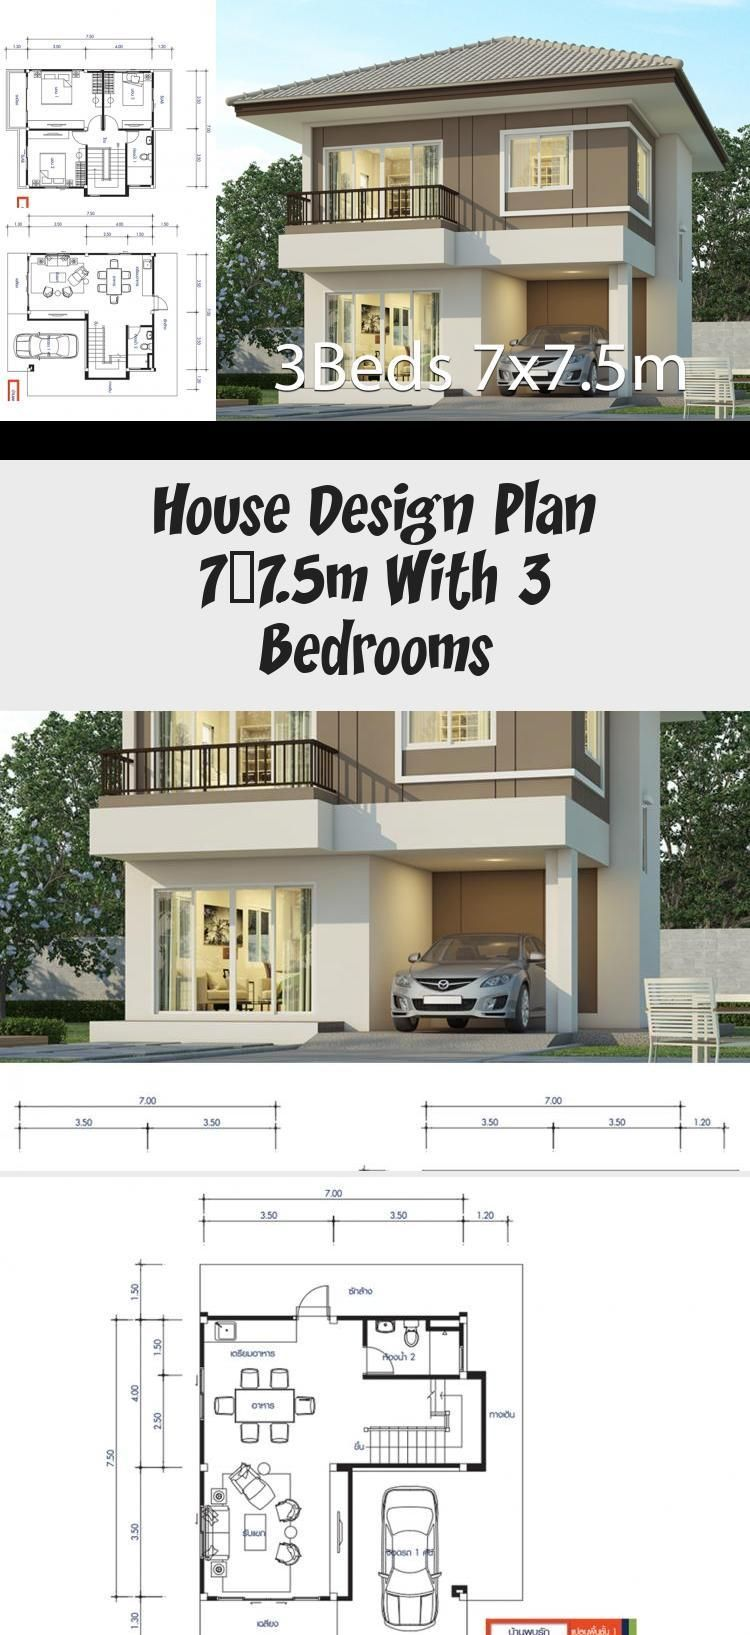 House Design Plan 7x7 5m With 3 Bedrooms Home Design With Plansearch Narrowho 7x75m Bedrooms Design Home Design Plans House Design Kerala House Design